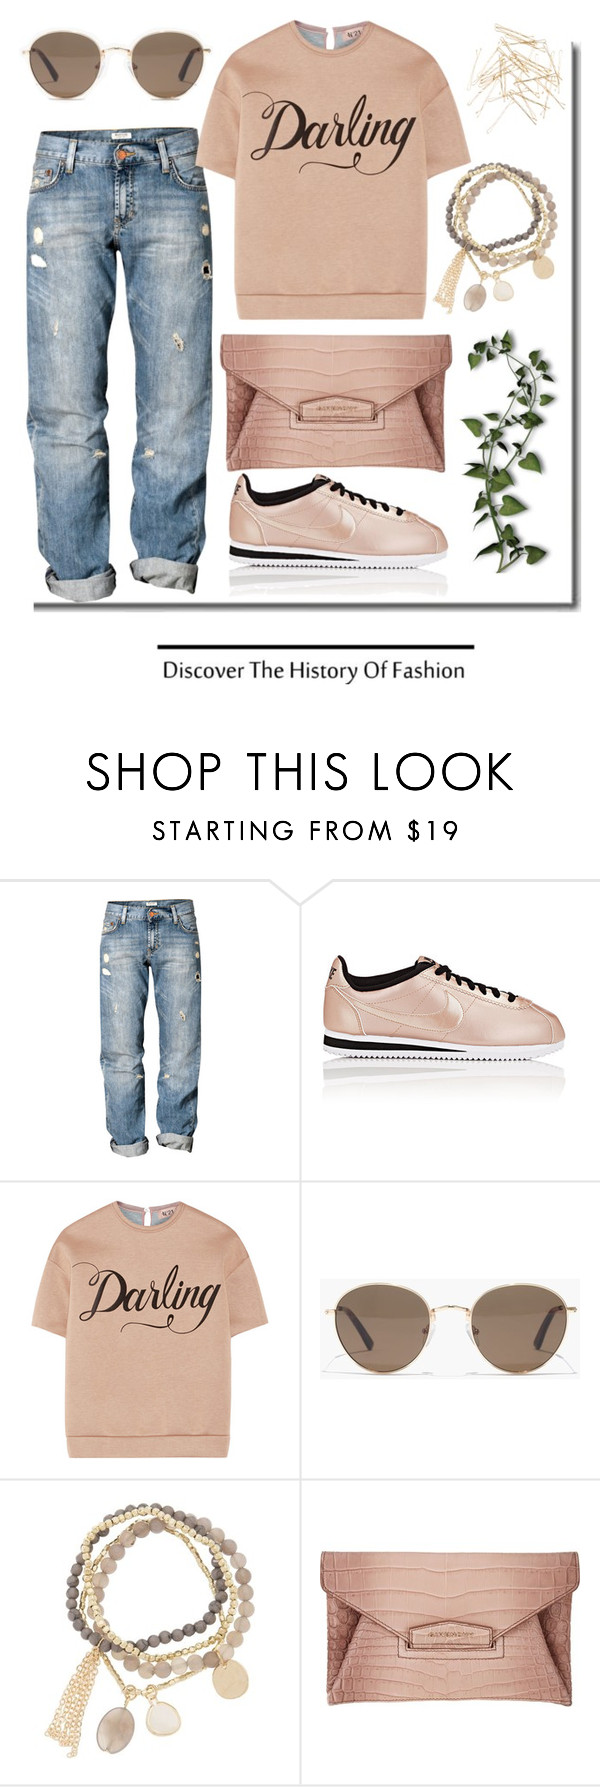 """The Great Discovery."" by schenonek ❤ liked on Polyvore featuring H&M, NIKE, N°21, Madewell, DesignSix, Givenchy and Monki"